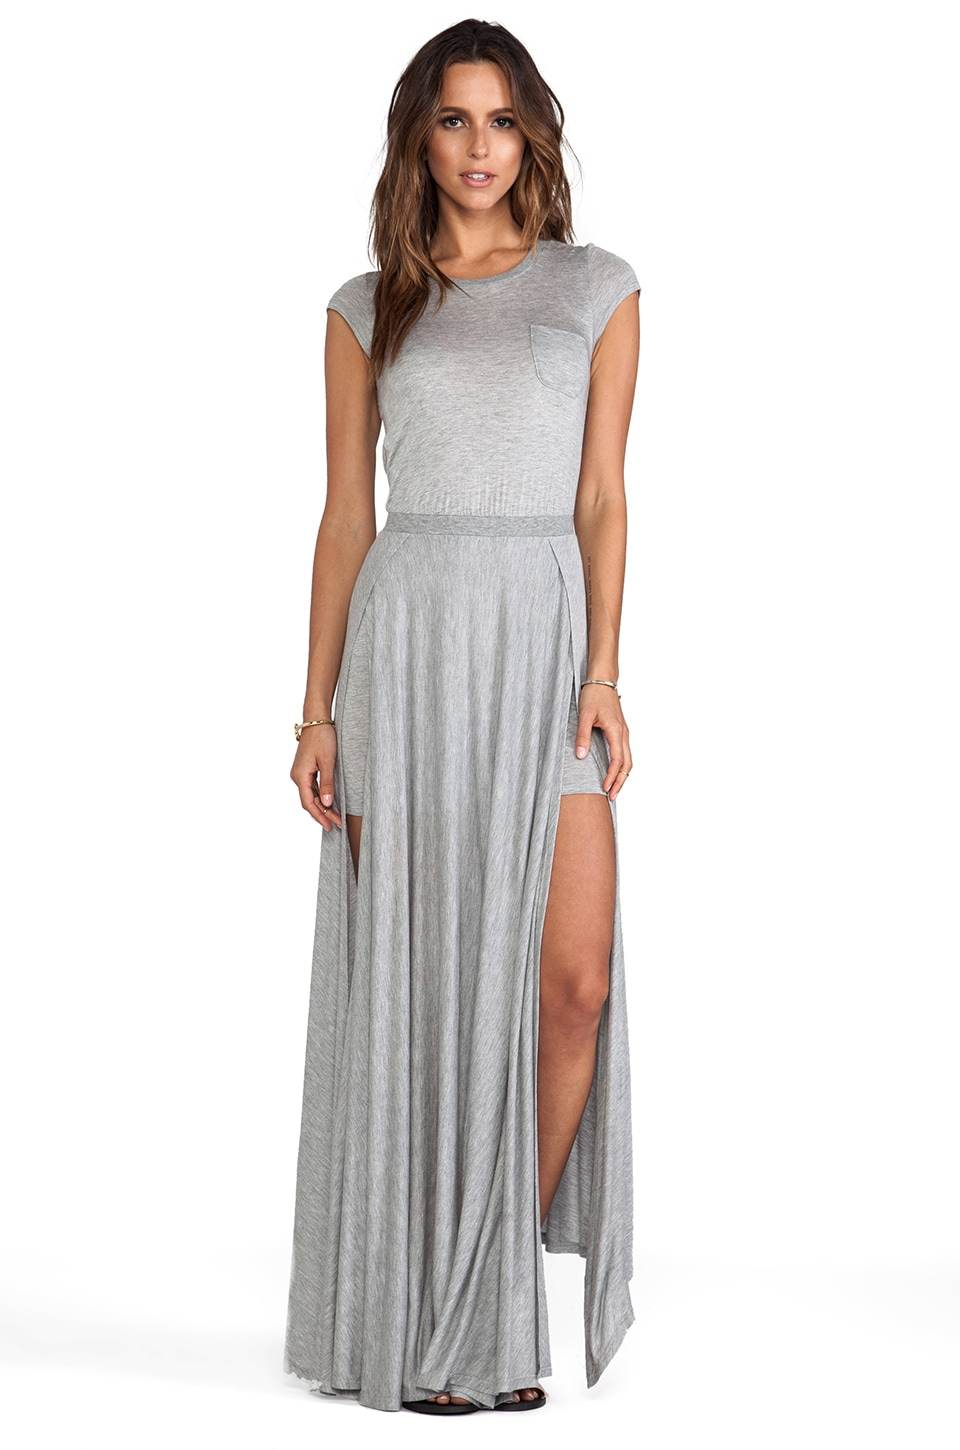 Heather Cross Back Maxi Dress in Light Heather Grey